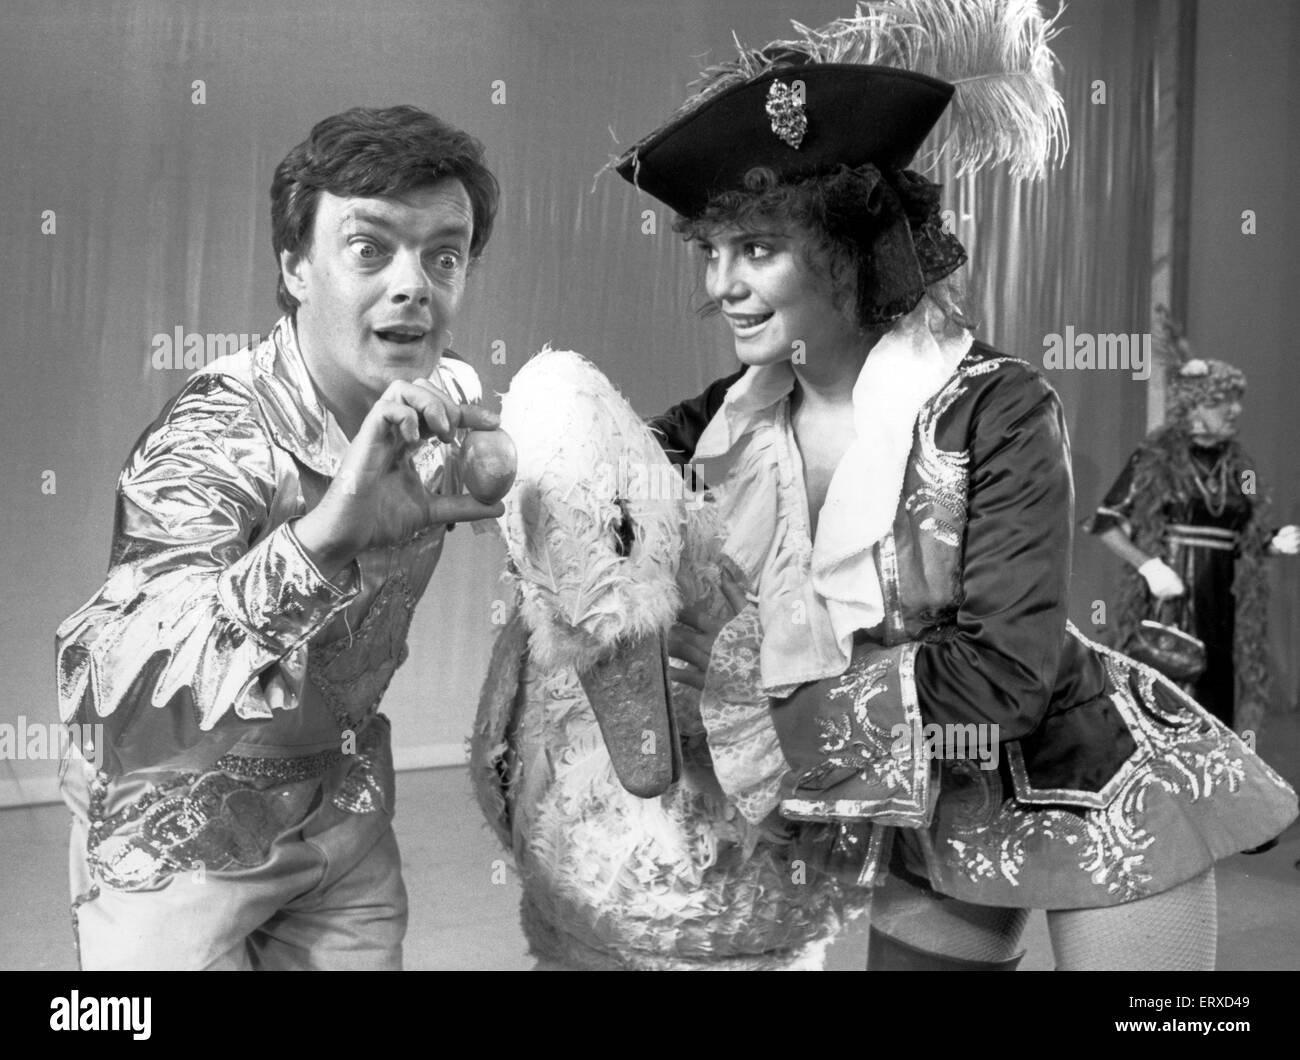 Panto time at the forum with Paul Squire and Michele Hooper. Alita Petrof joins the fun as their feathered friend. - Stock Image